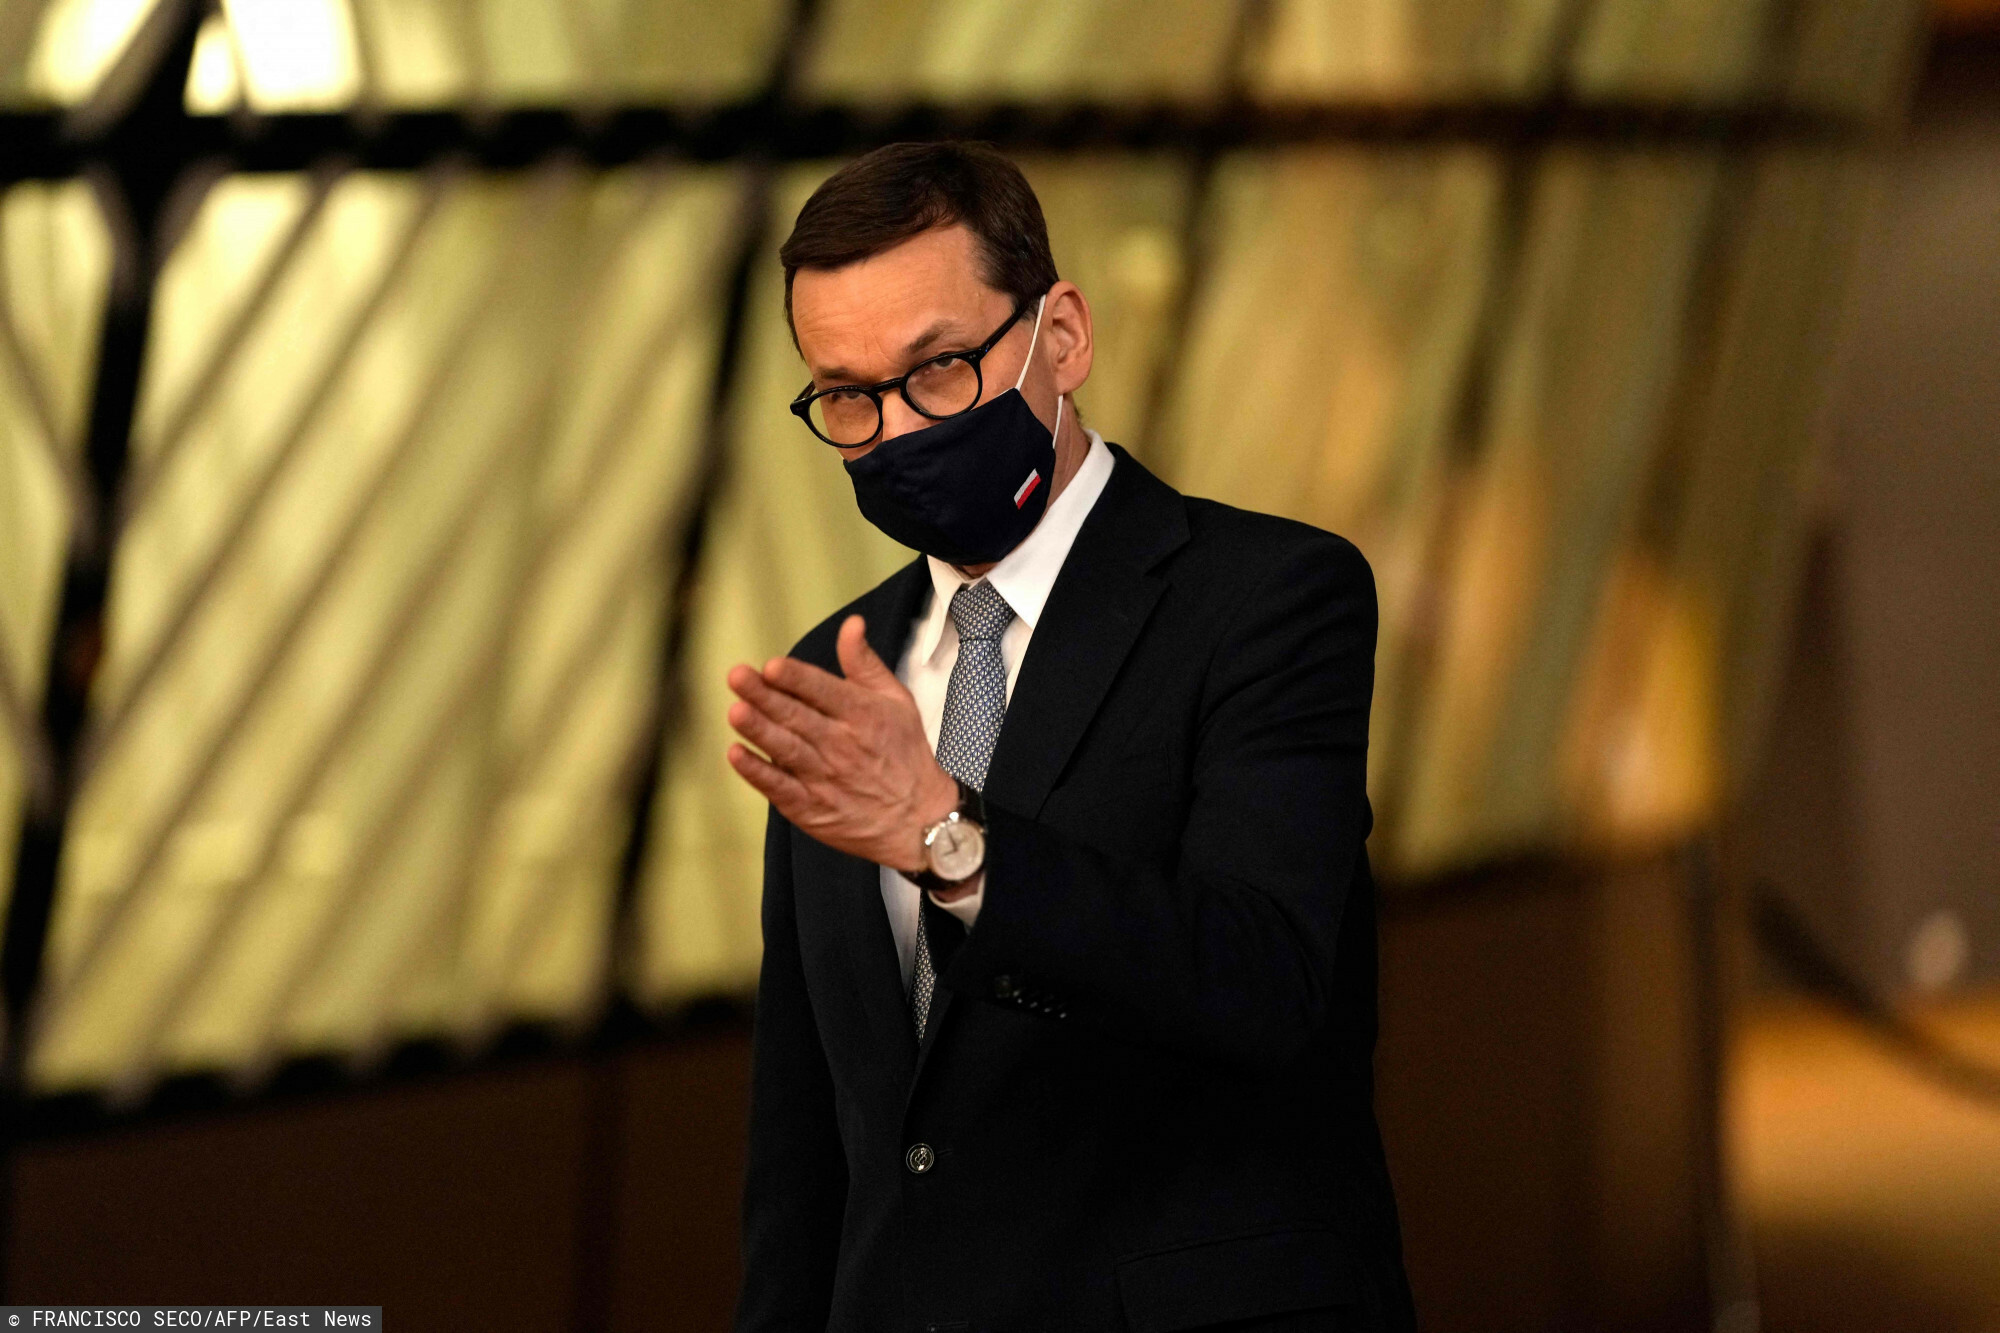 Poland's Prime Minister Mateusz Morawiecki speaks with the media as he departs at the end of the first day of the EU summit at the European Council building in Brussels on May 24, 2021. - European Union leaders take part in a two day in-person meeting to discuss the coronavirus pandemic, climate and Russia. (Photo by Francisco SECO / POOL / AFP)